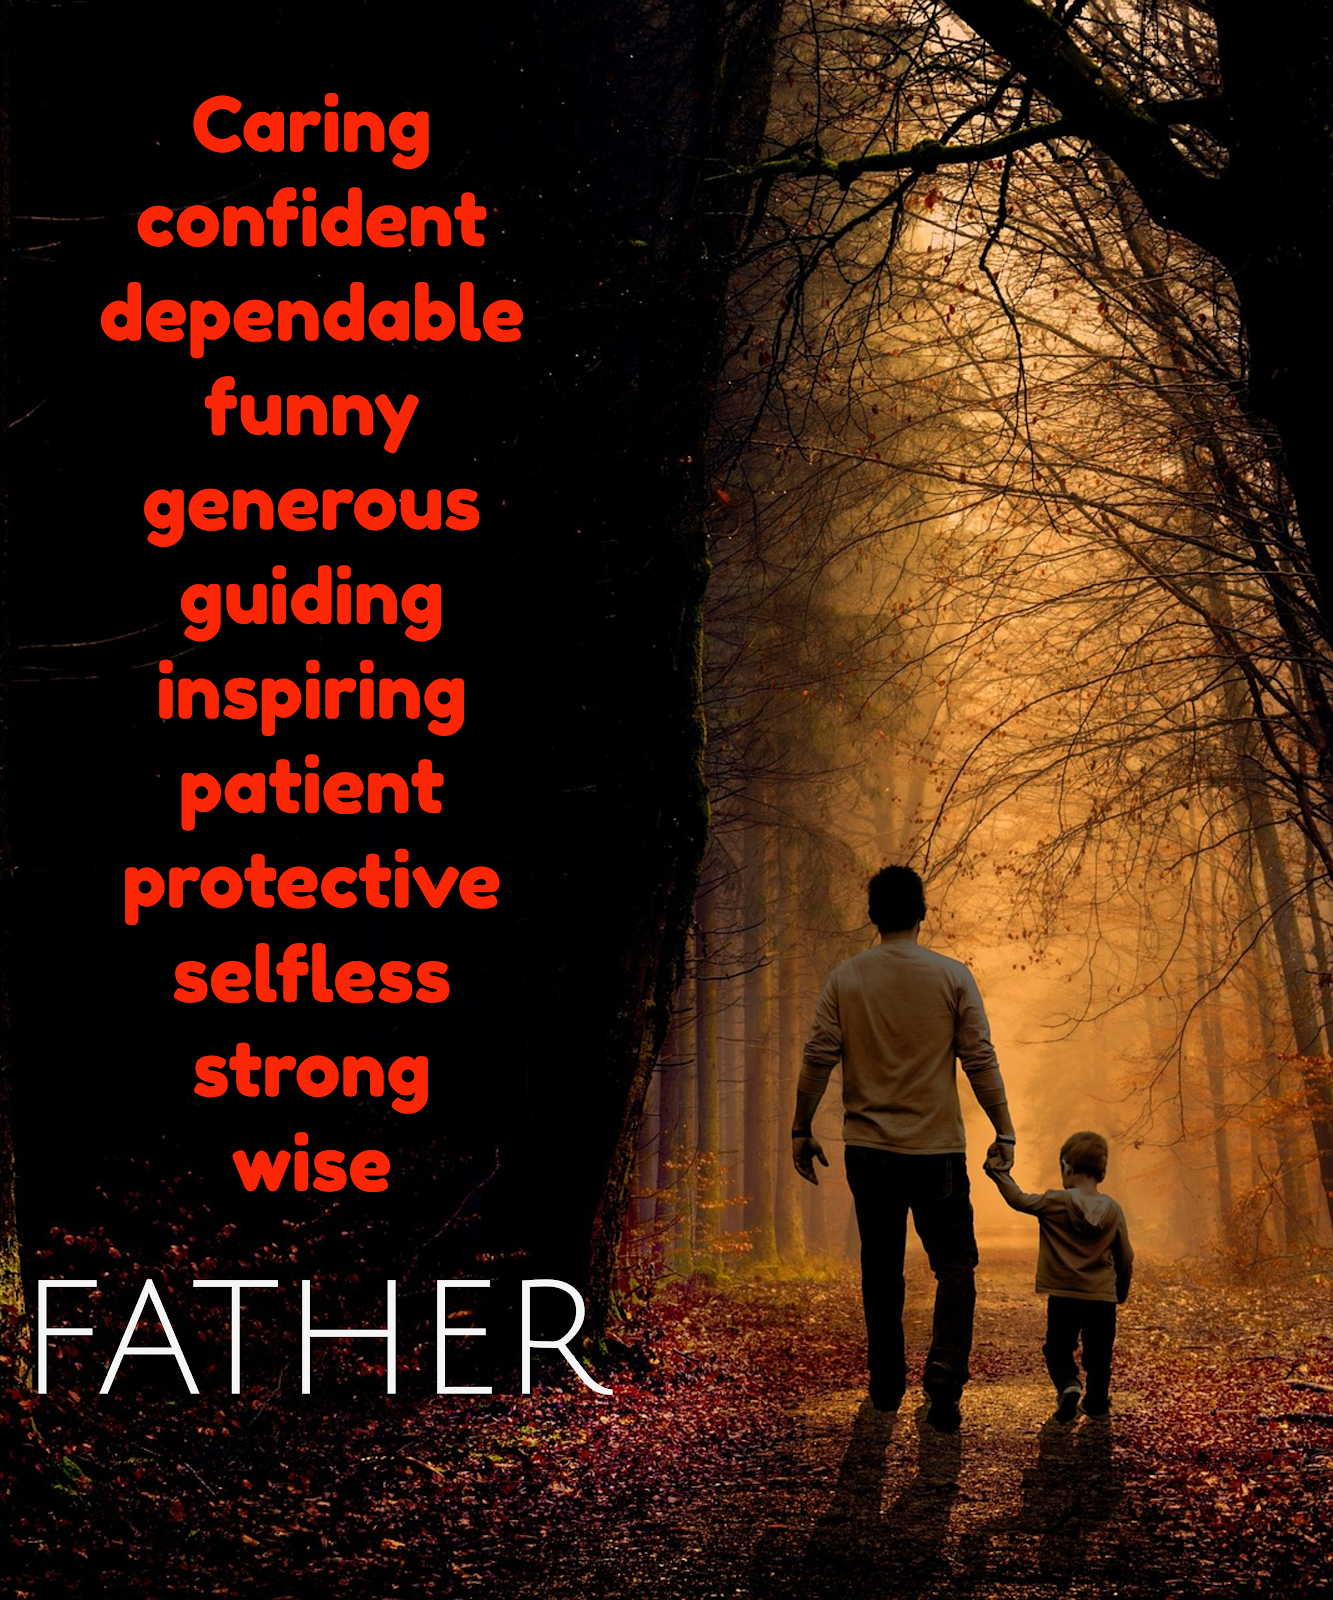 A father is......